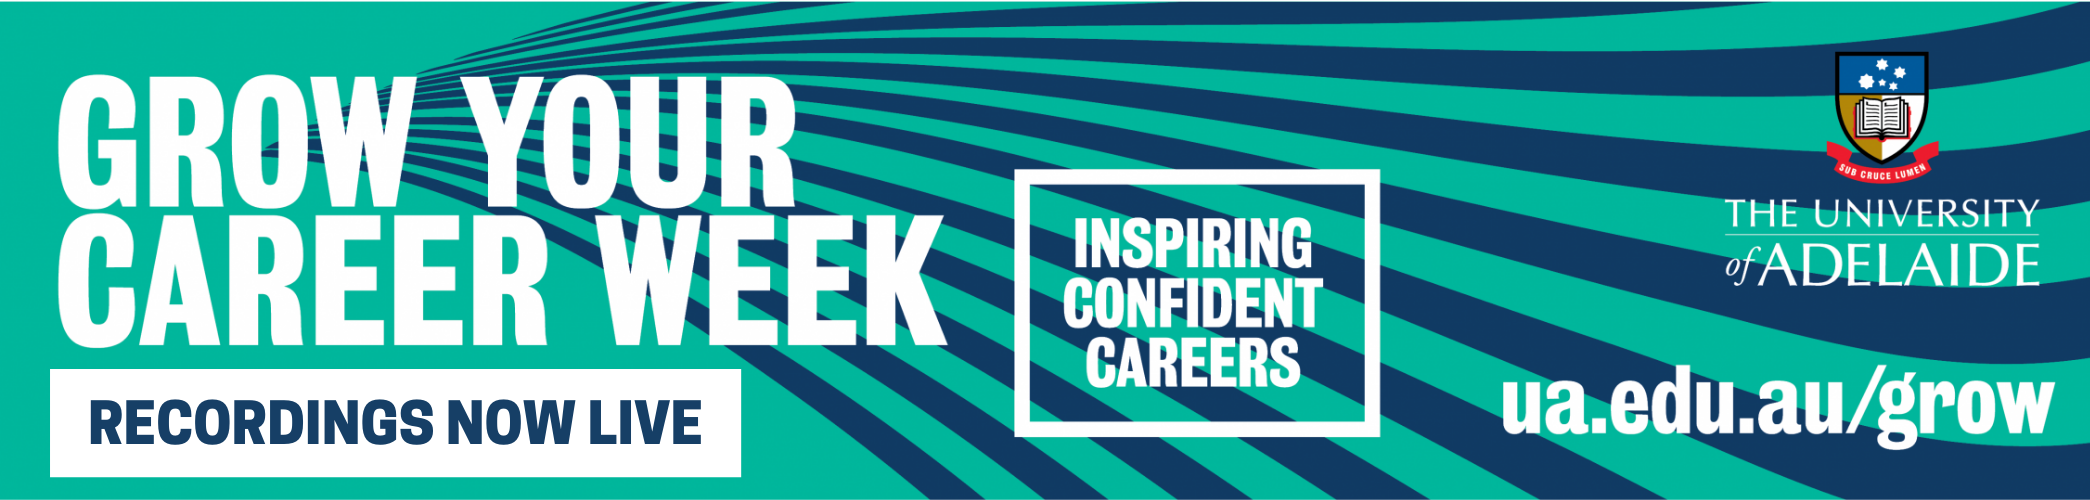 Grow Your Career Week 2020 Recordings Now Live